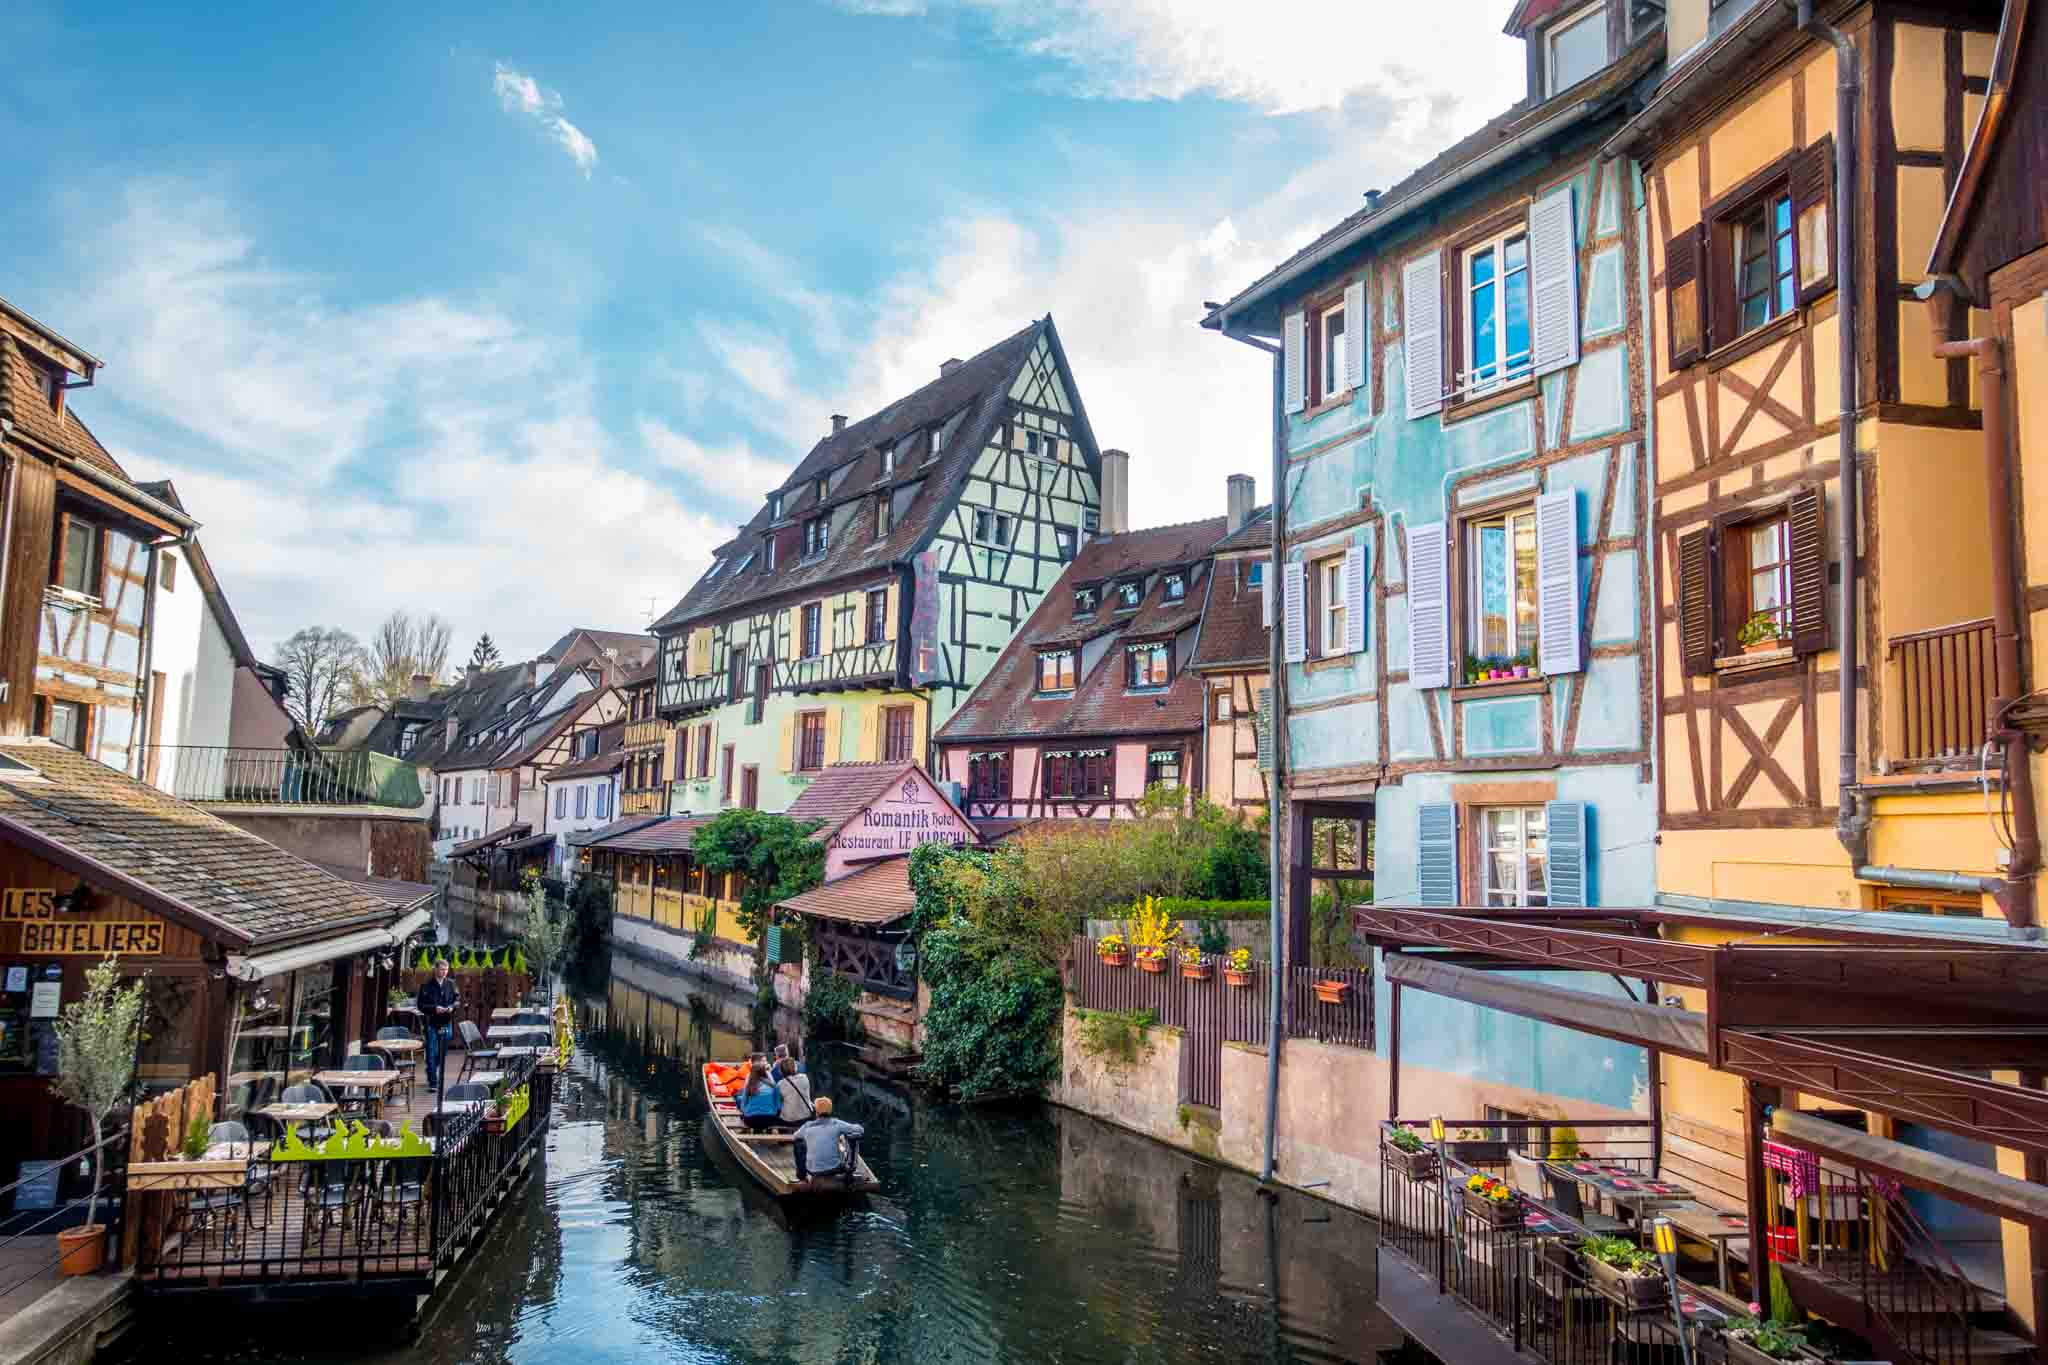 See Petite Venise and take a canal cruise in Colmar, Alsace